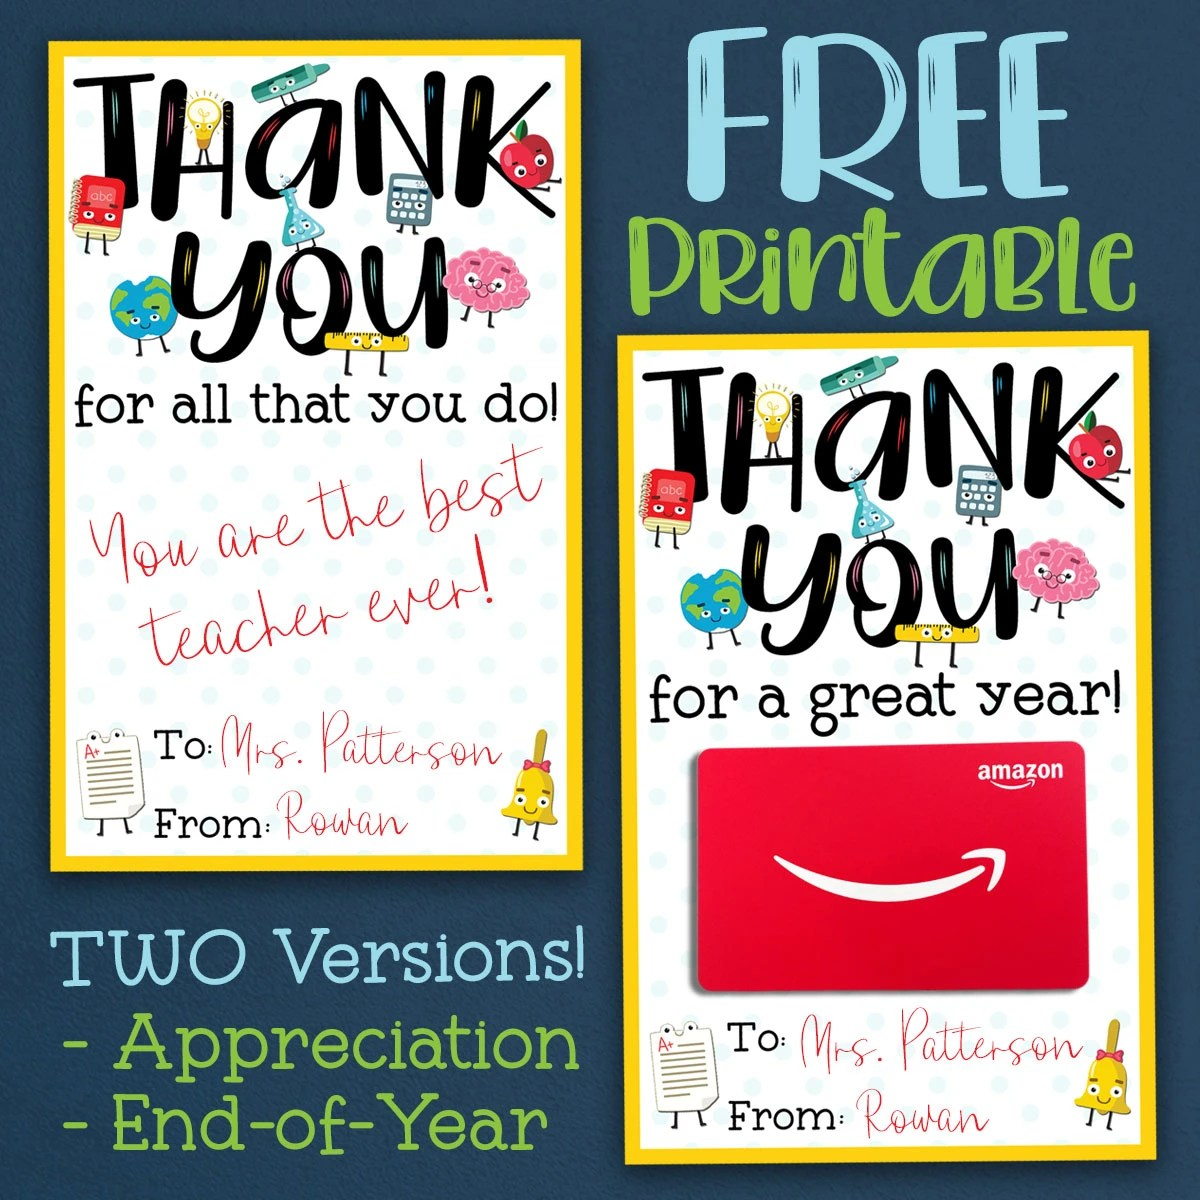 photo regarding Free Printable Teacher Appreciation Tags named Absolutely free Instructor Appreciation Thank Your self Printable - 2 Models!